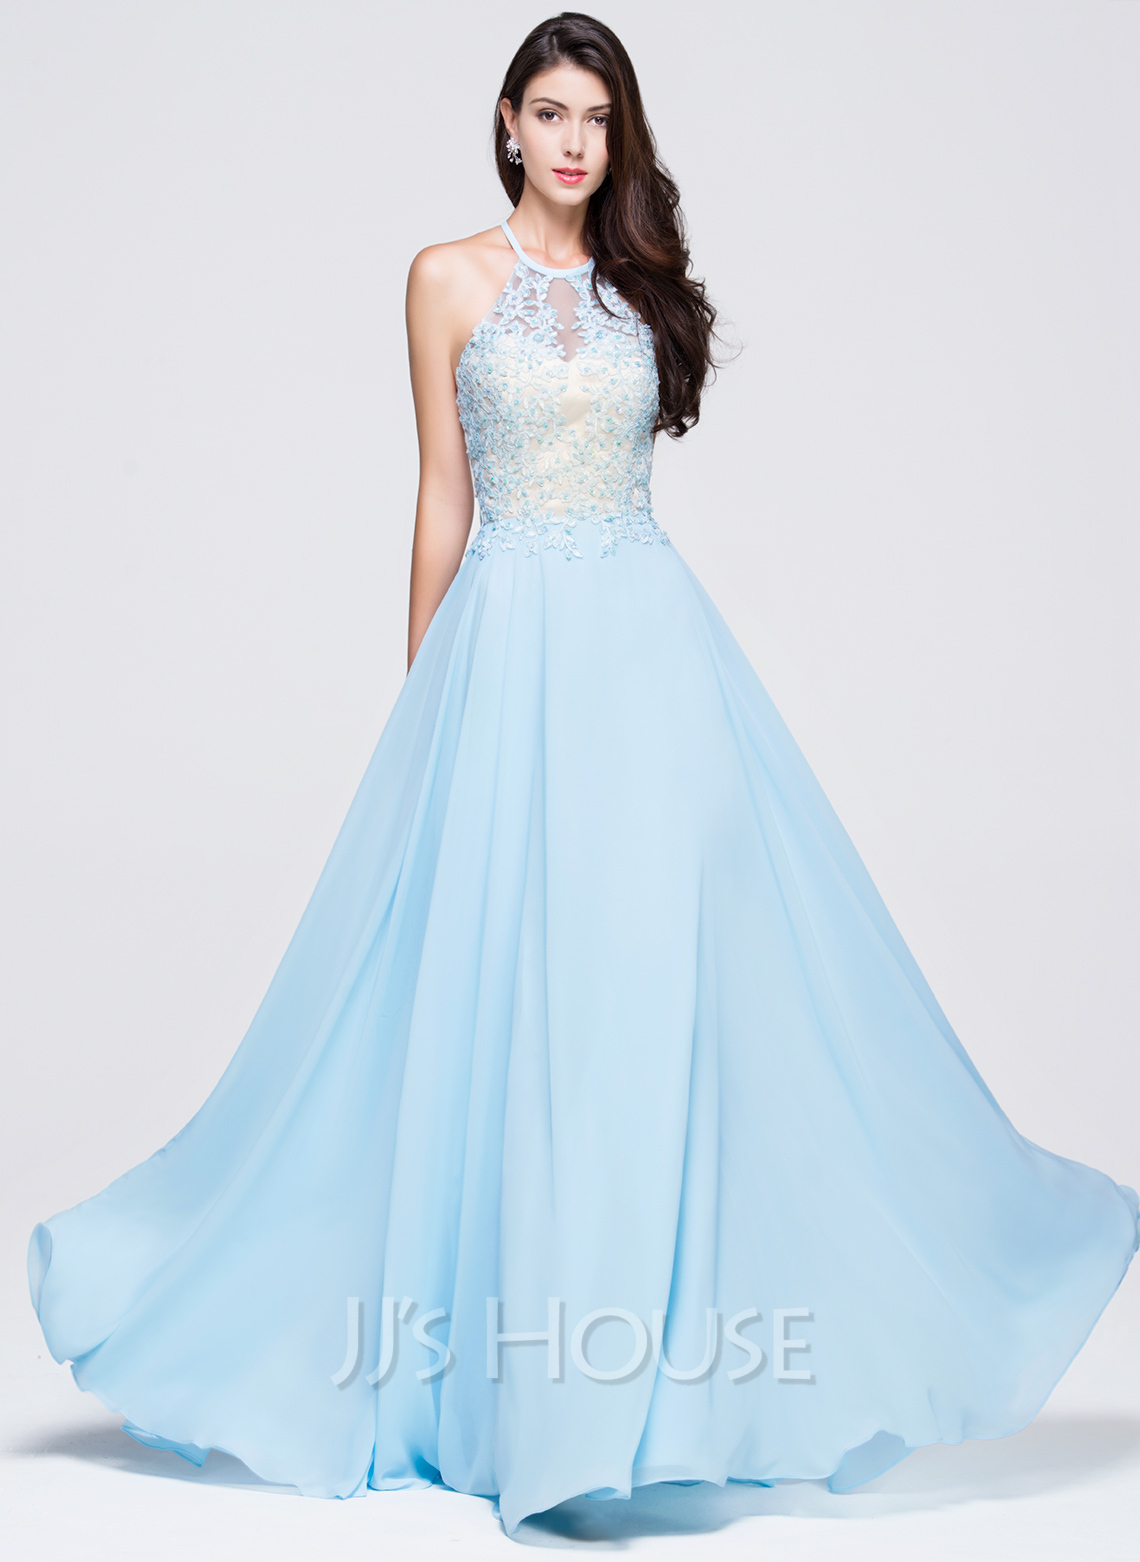 79a6350a3a2 A-Line Princess Scoop Neck Floor-Length Chiffon Prom Dresses With Beading  Appliques. Loading zoom